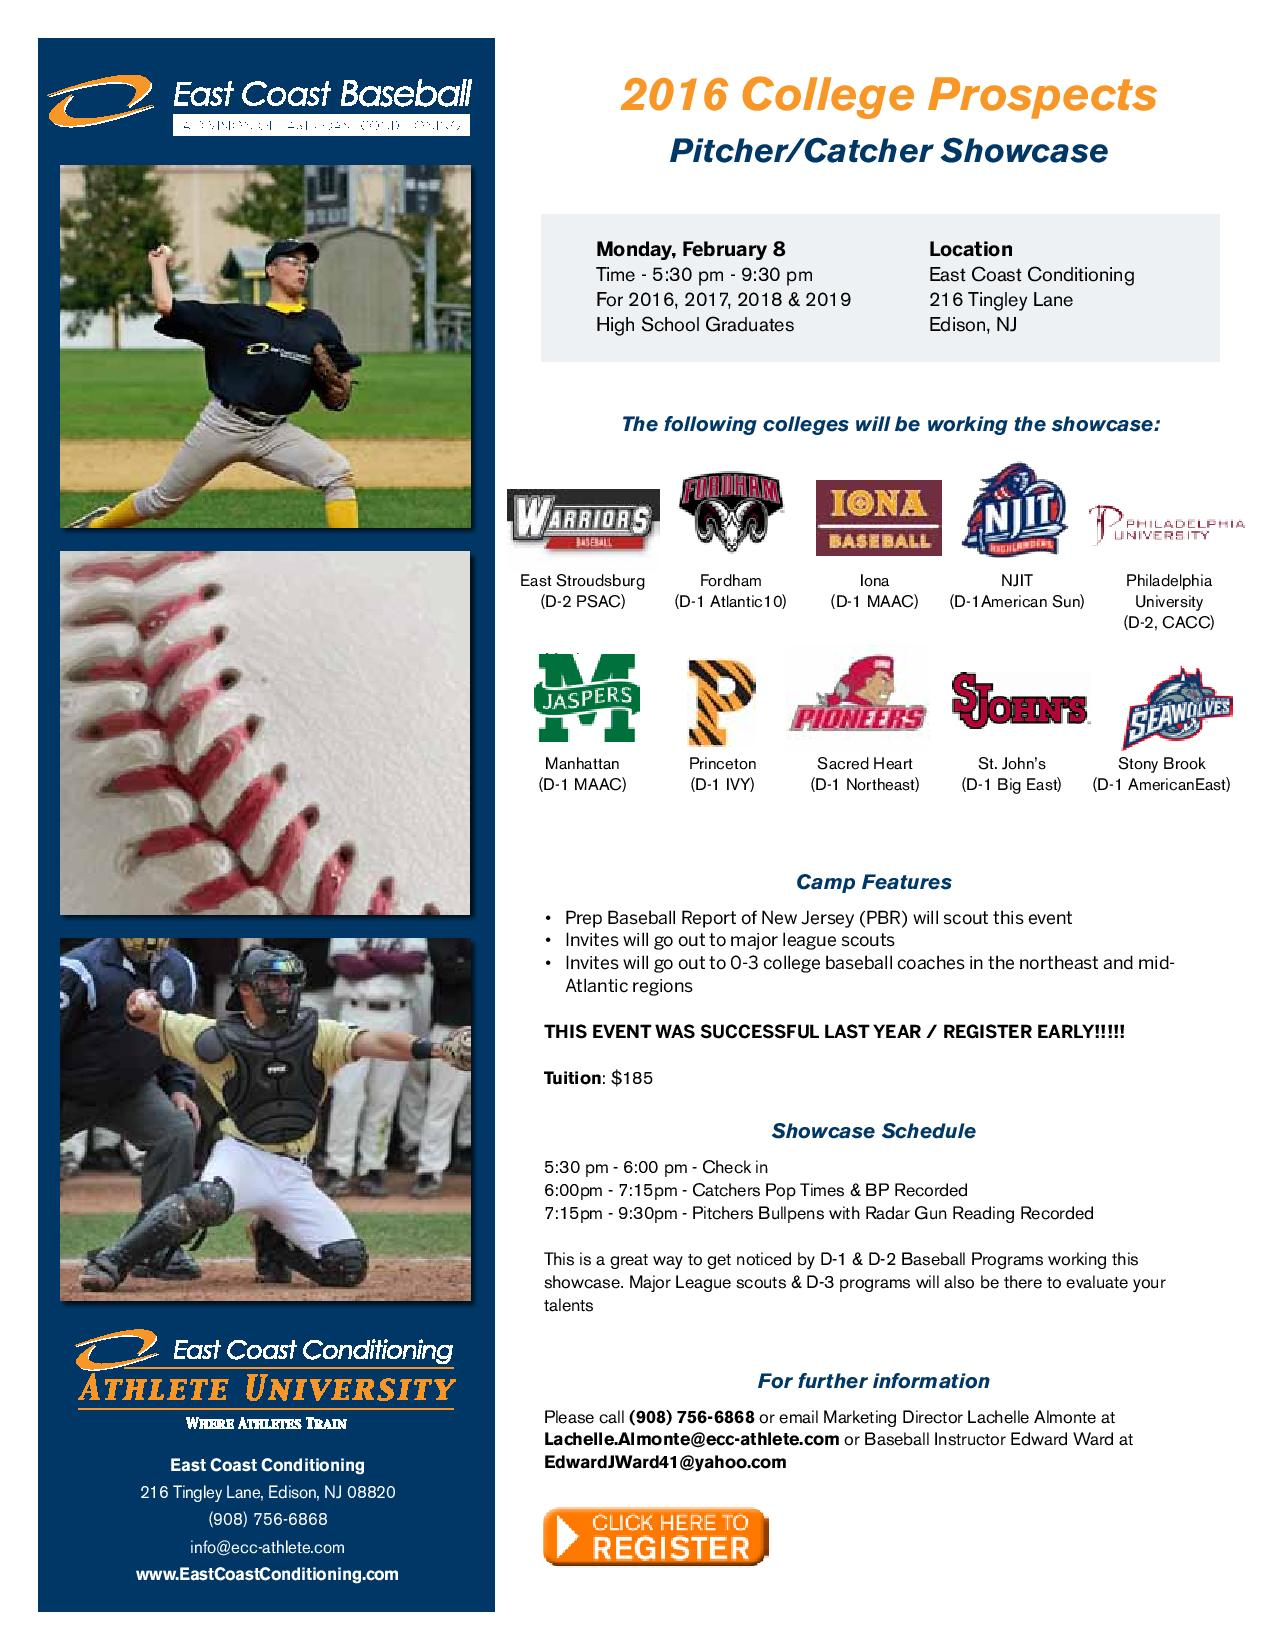 College Prospects Pitcher/Catcher Showcase at East Coast Conditioning